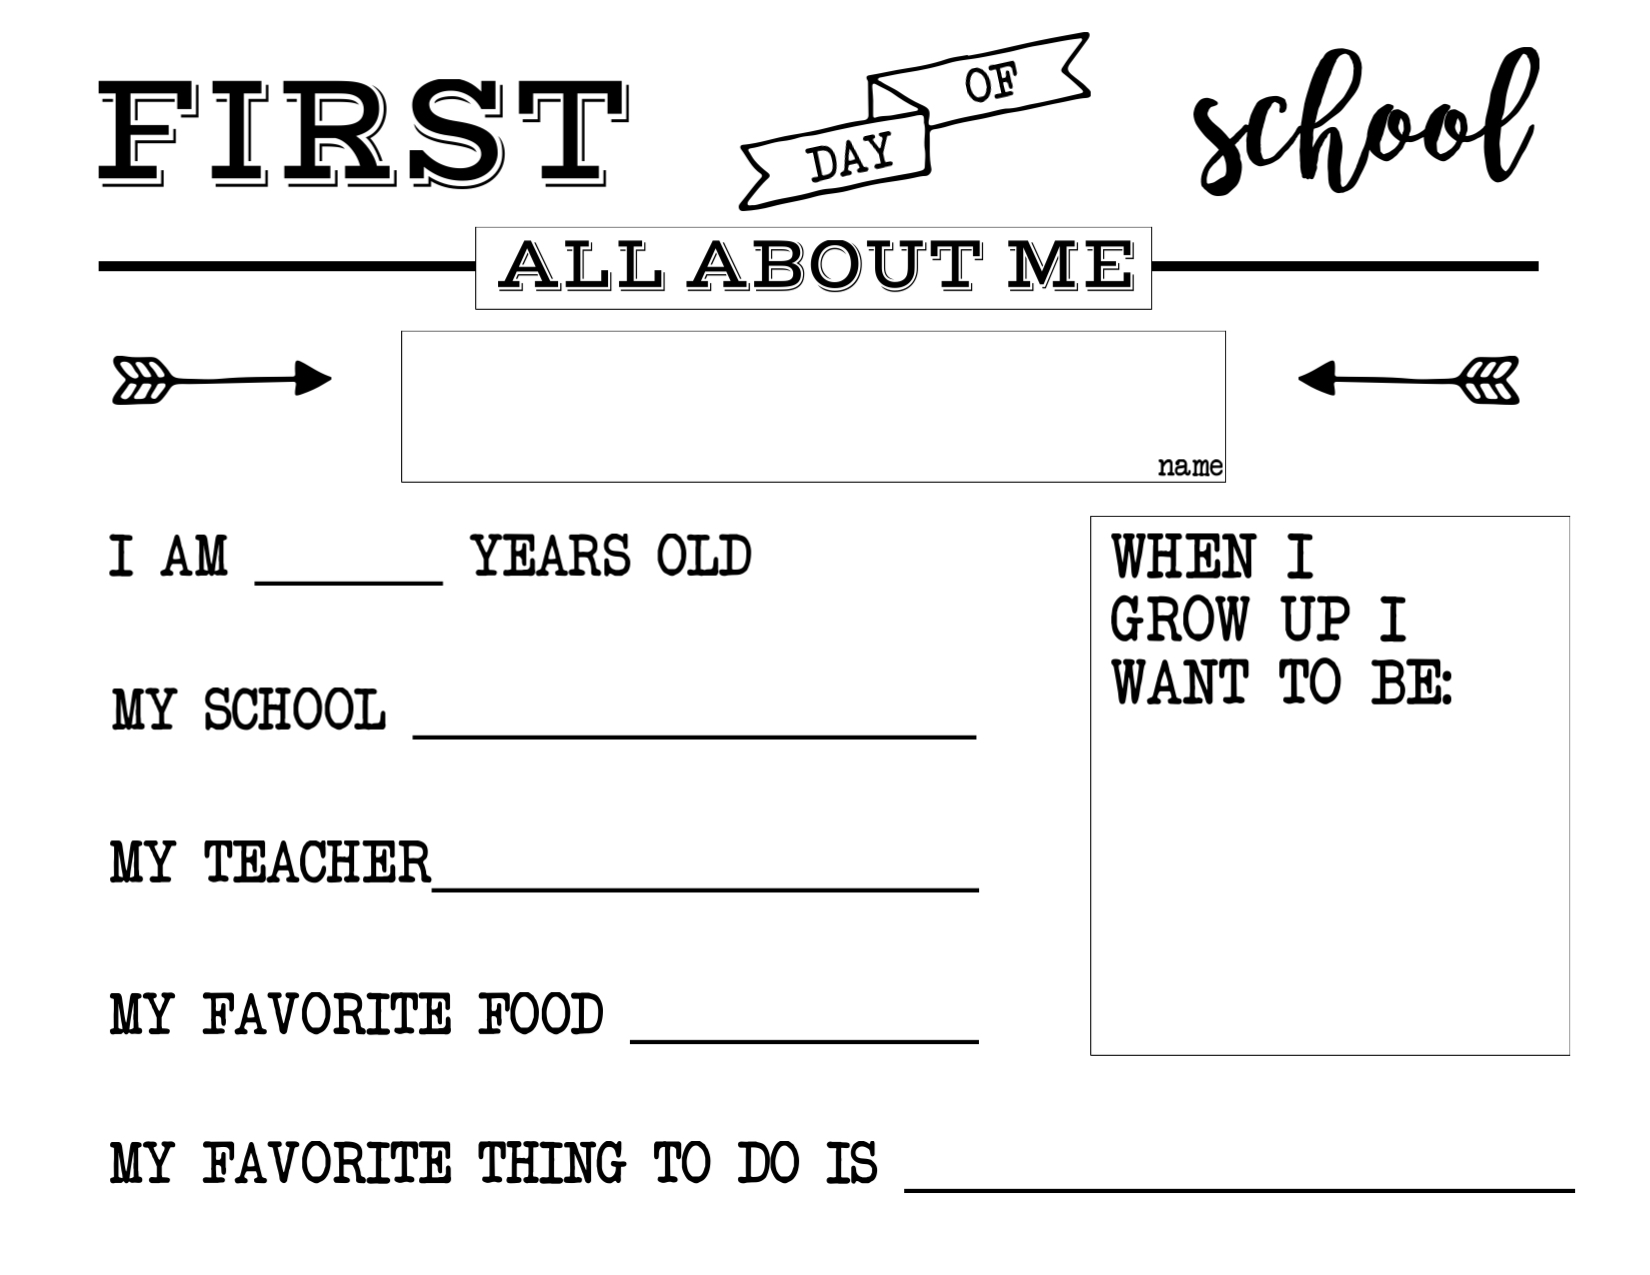 photograph regarding First Day of School Printable titled To start with Working day of College or university All With regards to Me Signal - Paper Path Style and design